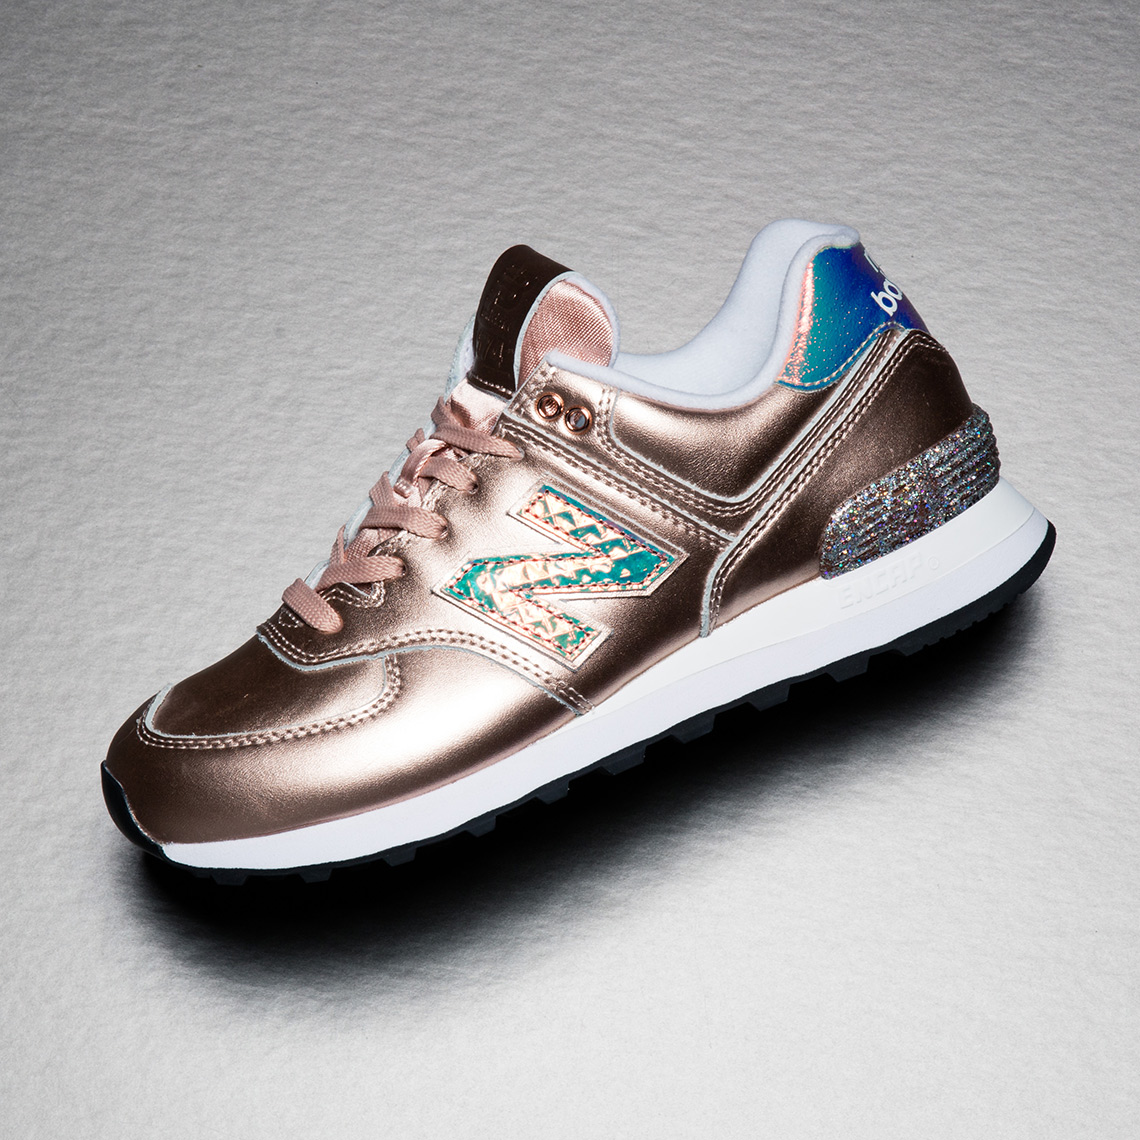 "a1964f5e0a75 Get the New Balance 574 ""Glitter Pack"" tomorrow on NewBalance.com and  select retailers."